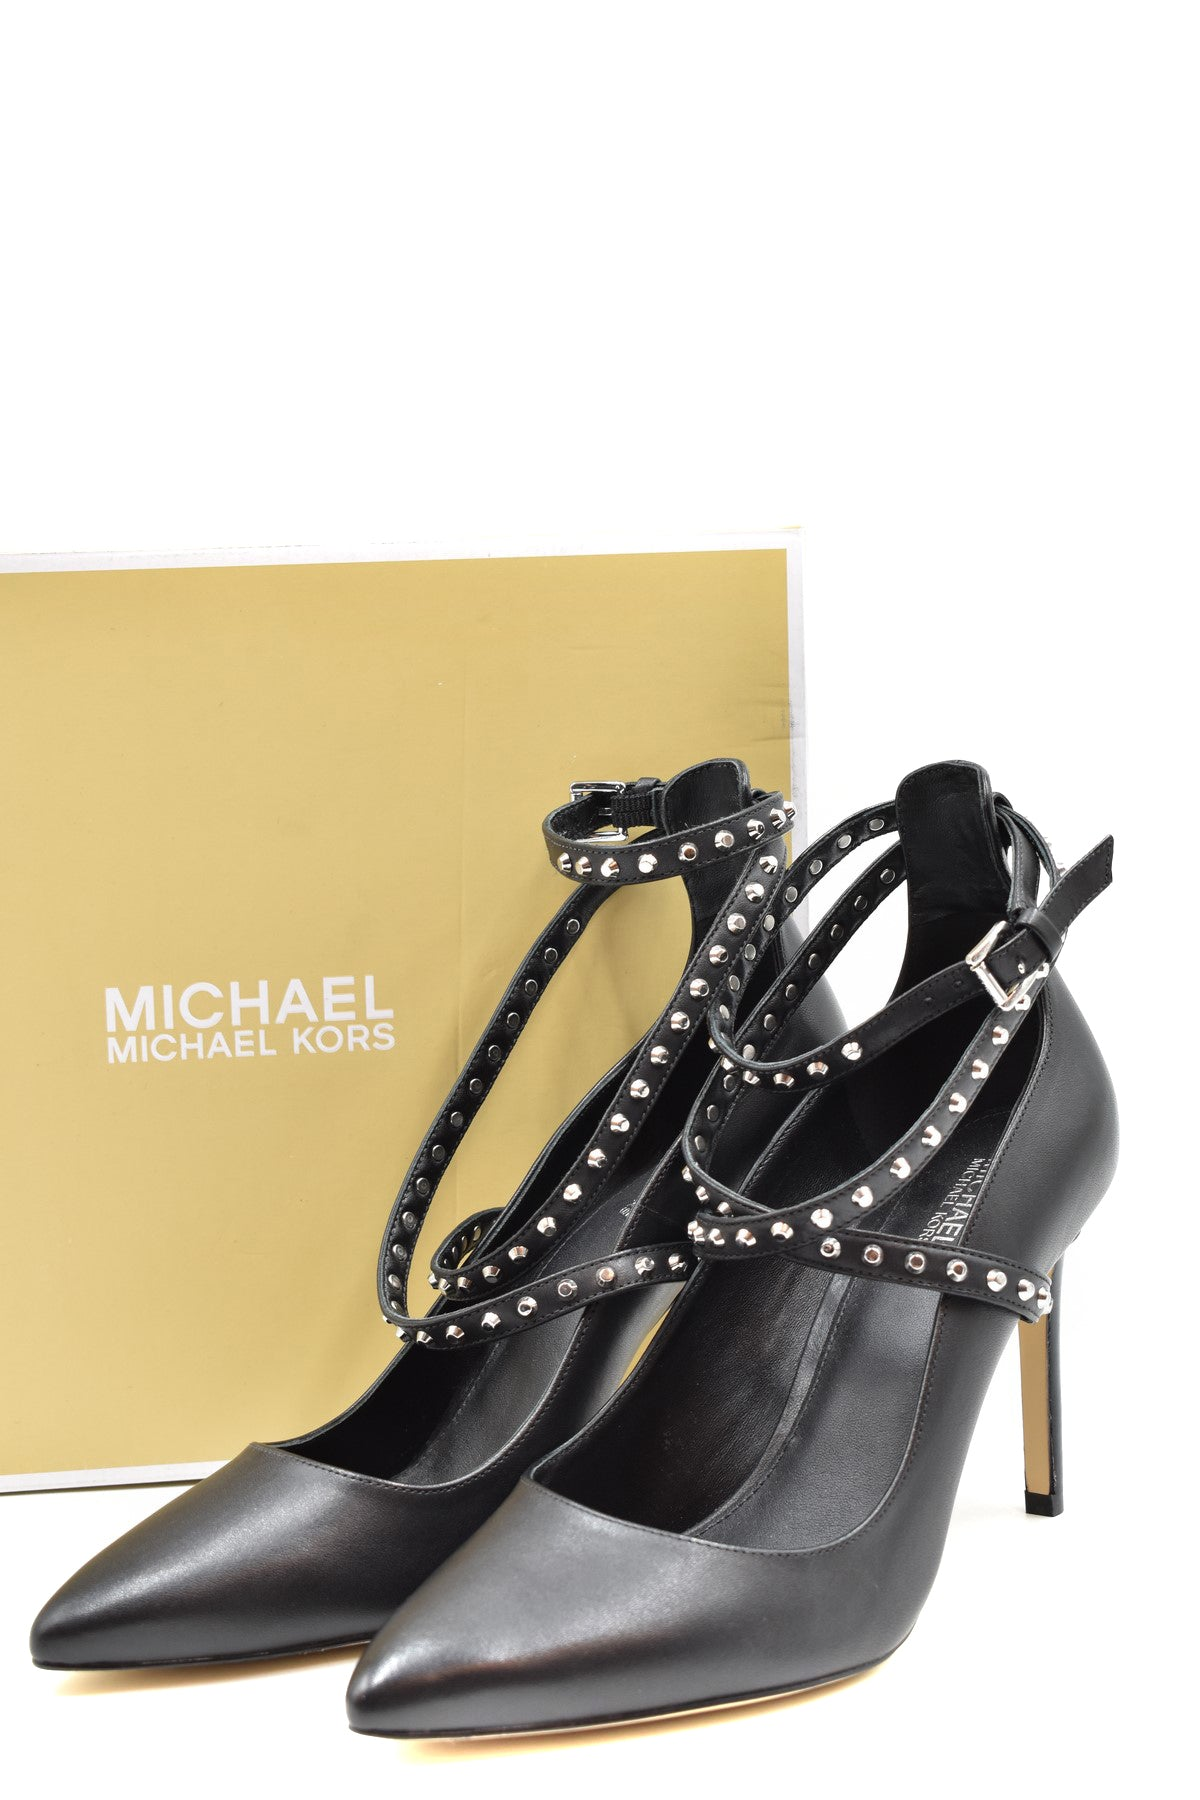 Shoes Michael Kors--Product Details Terms: New With LabelMain Color: BlackType Of Accessory: ShoesSeason: Fall / WinterMade In: ChinaGender: WomanHeel'S Height: 9Size: UsComposition: Leather 100%Year: 2019Manufacturer Part Number: 40F8Jnhs1L-Keyomi-Sook